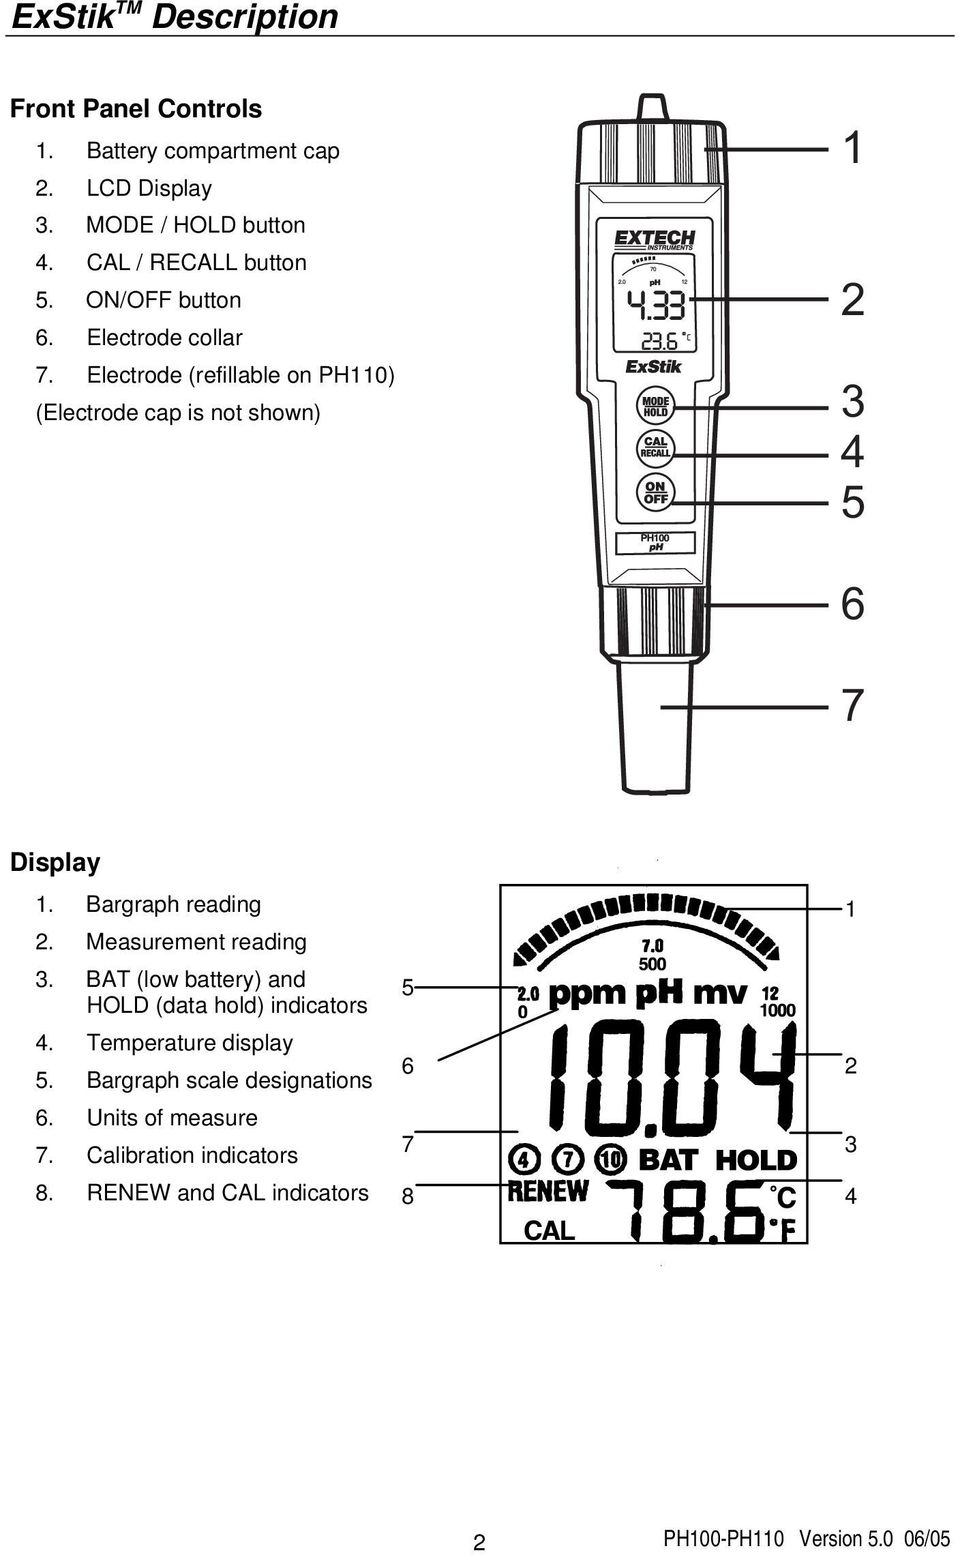 Electrode (refillable on PH110) (Electrode cap is not shown) 1 2 3 4 5 6 7 Display 1. Bargraph reading 2.